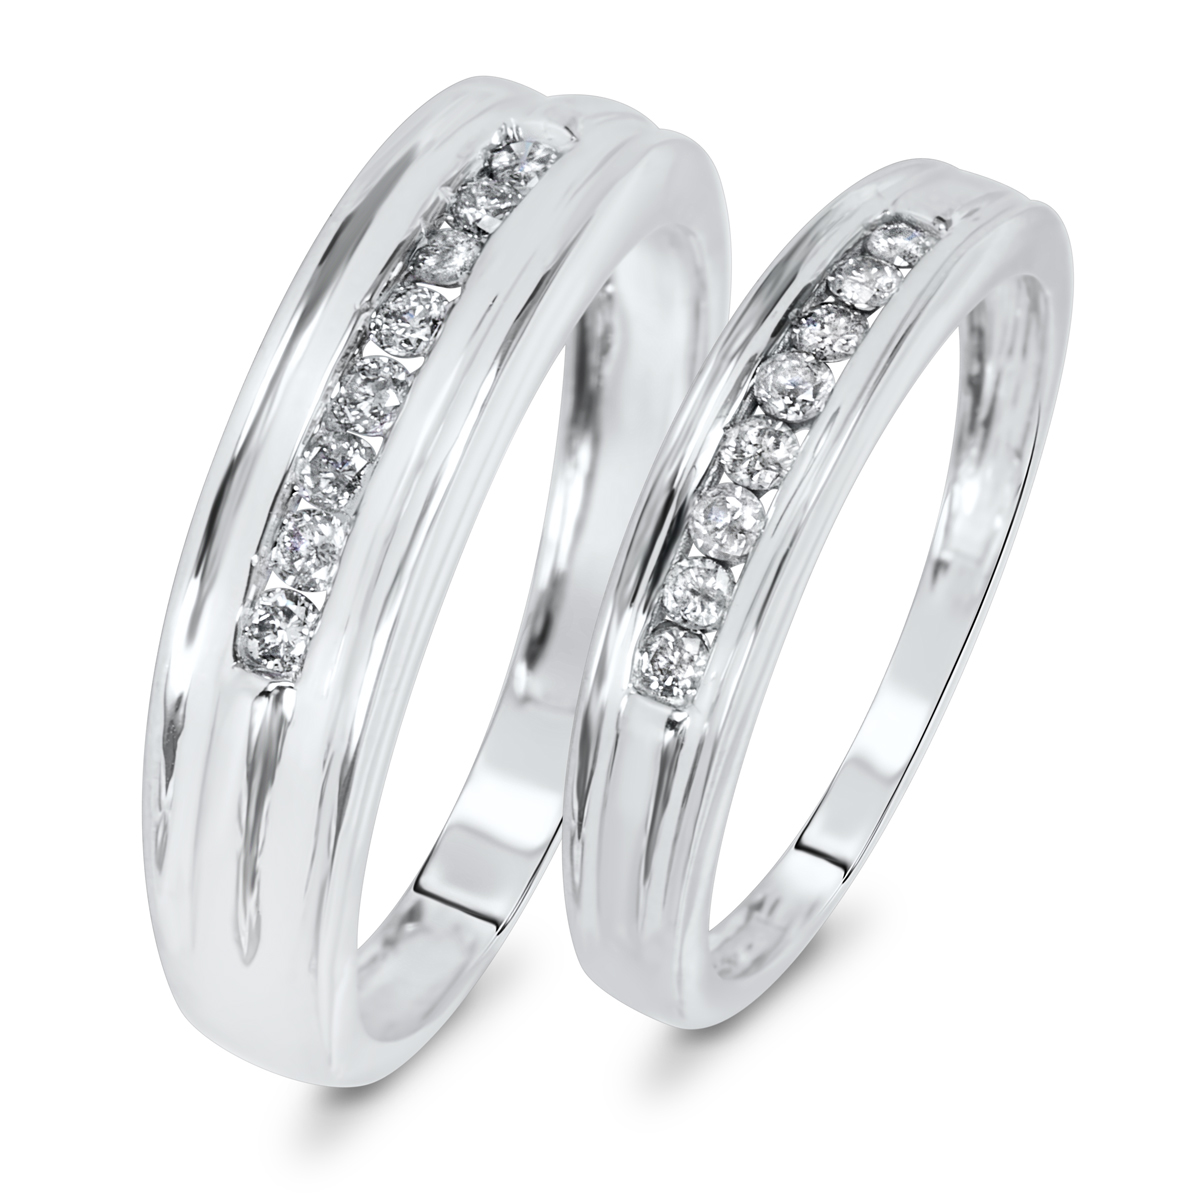 mens wedding band 10k white gold 1 white gold wedding bands Hover to zoom